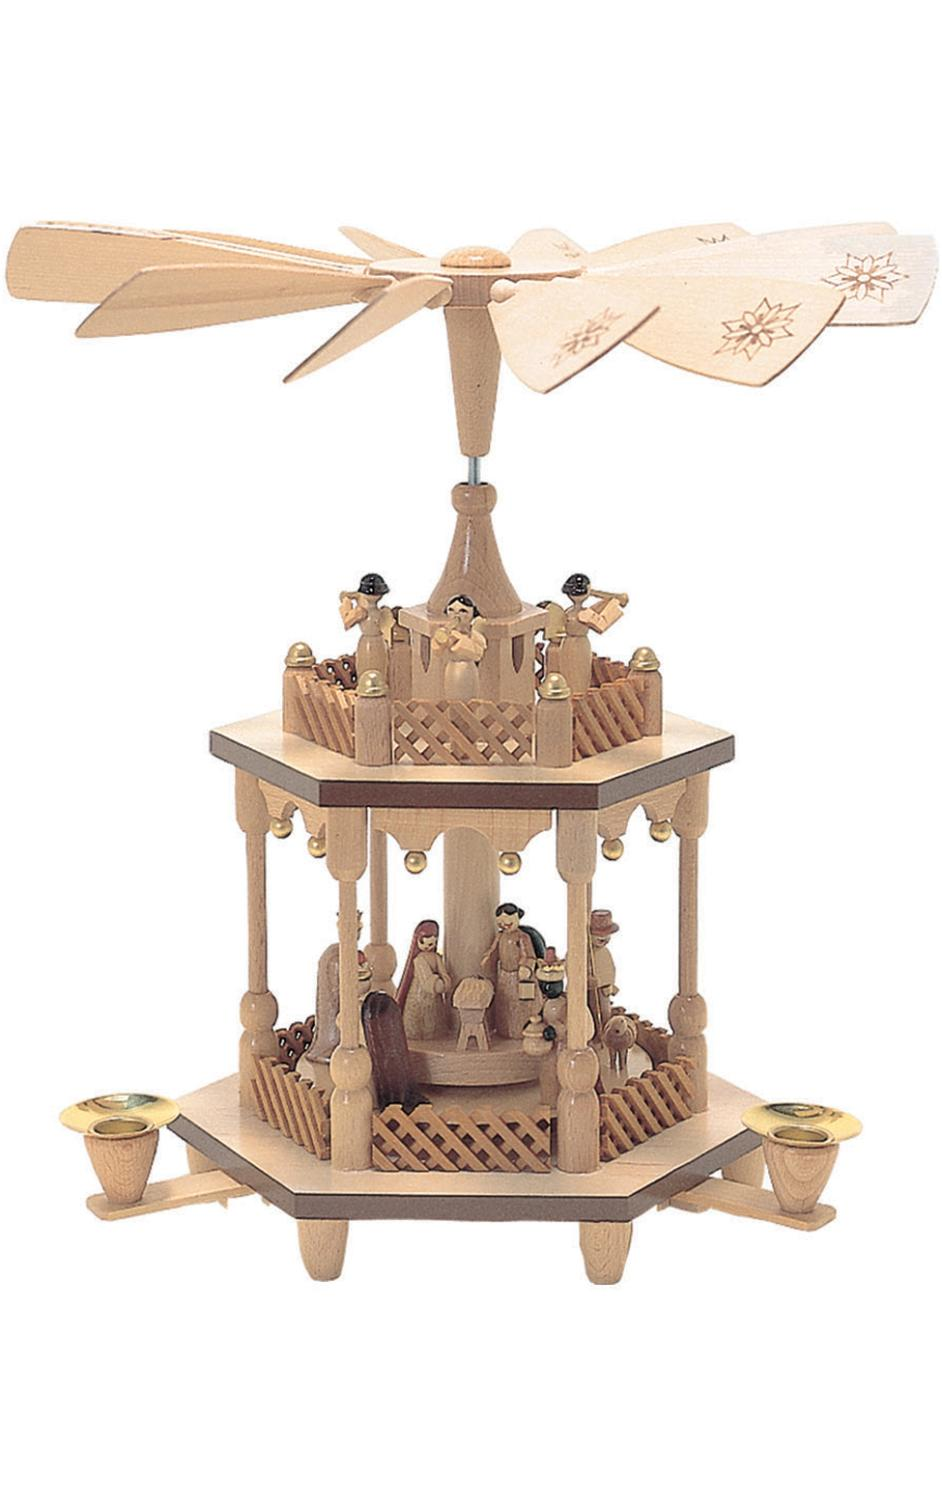 1371 - Richard Glaesser Pyramid - 2 tiers Nativity Scene and Angel Musicians - 12.5